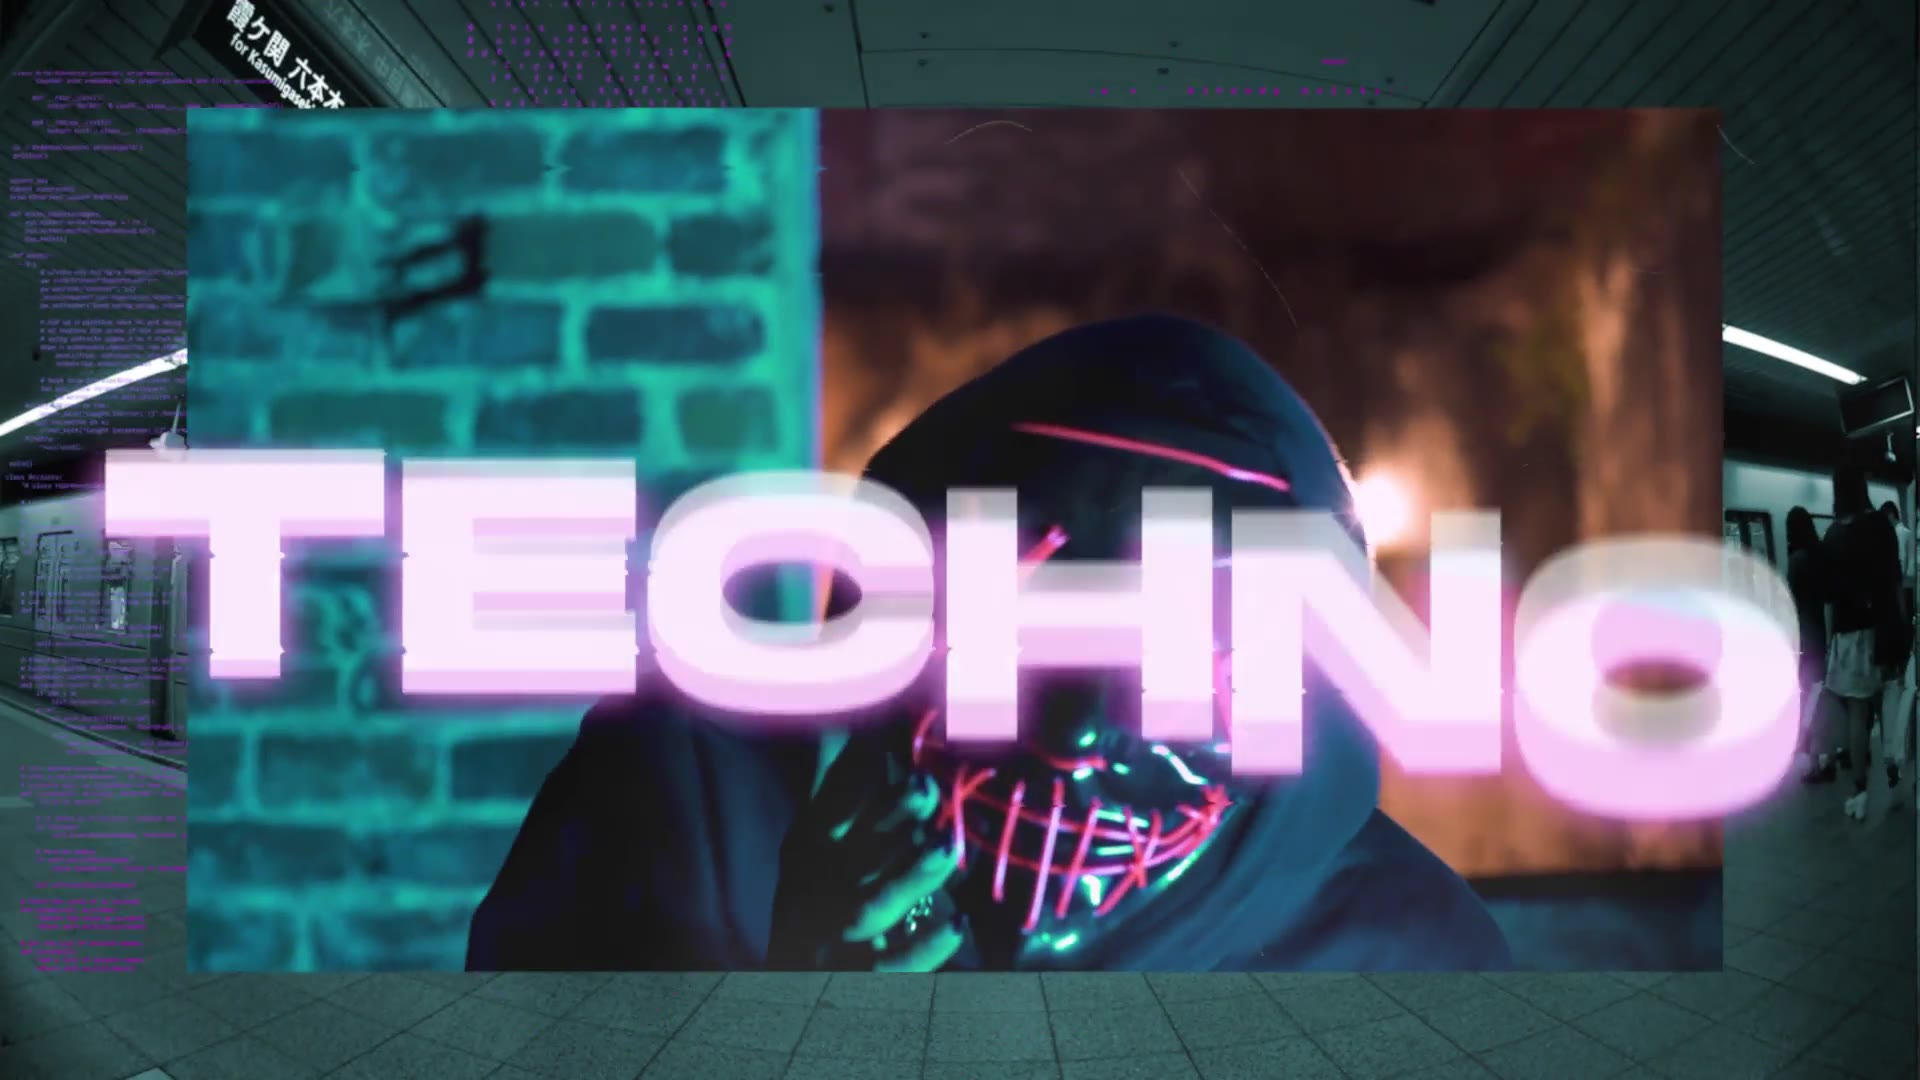 Glitch Promo Videohive 31675625 After Effects Image 7